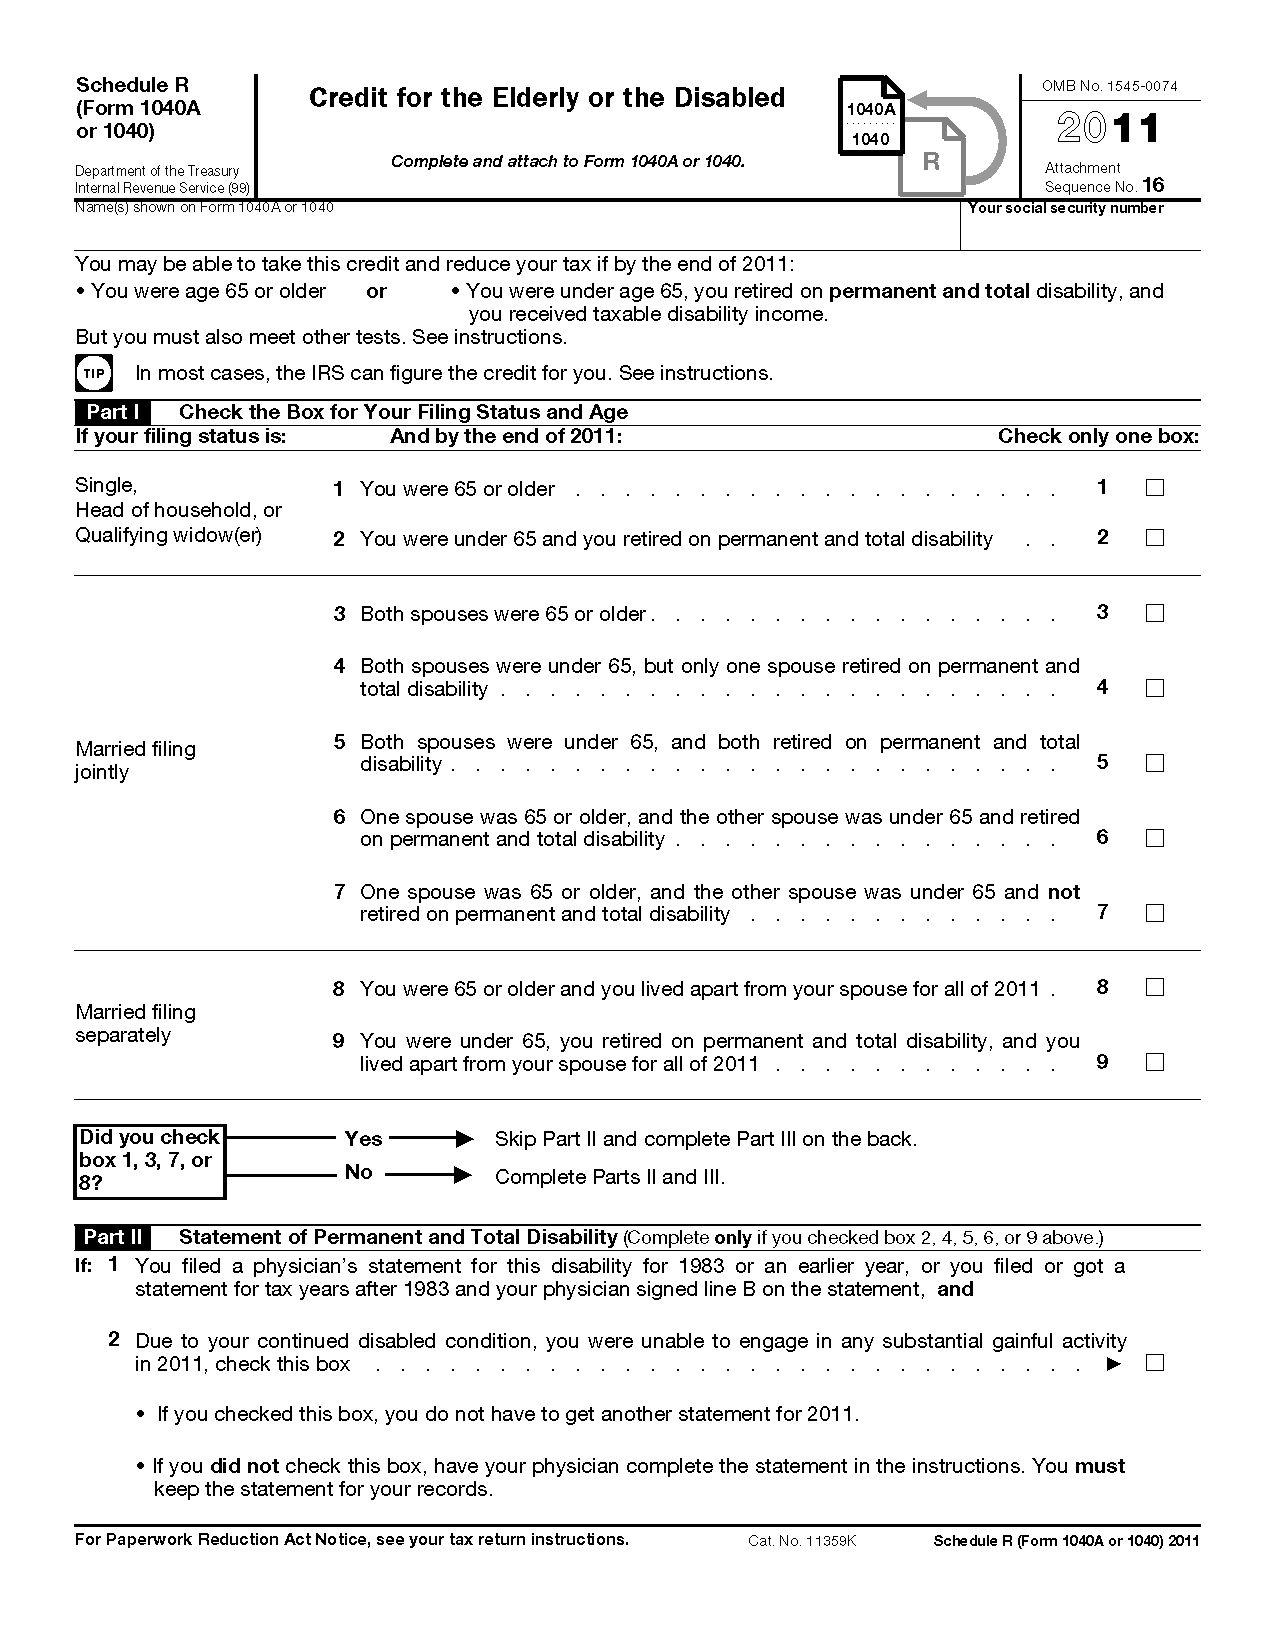 Form 1040 schedule r credit for the elderly or the disabled for 1040 form 2011 tax table